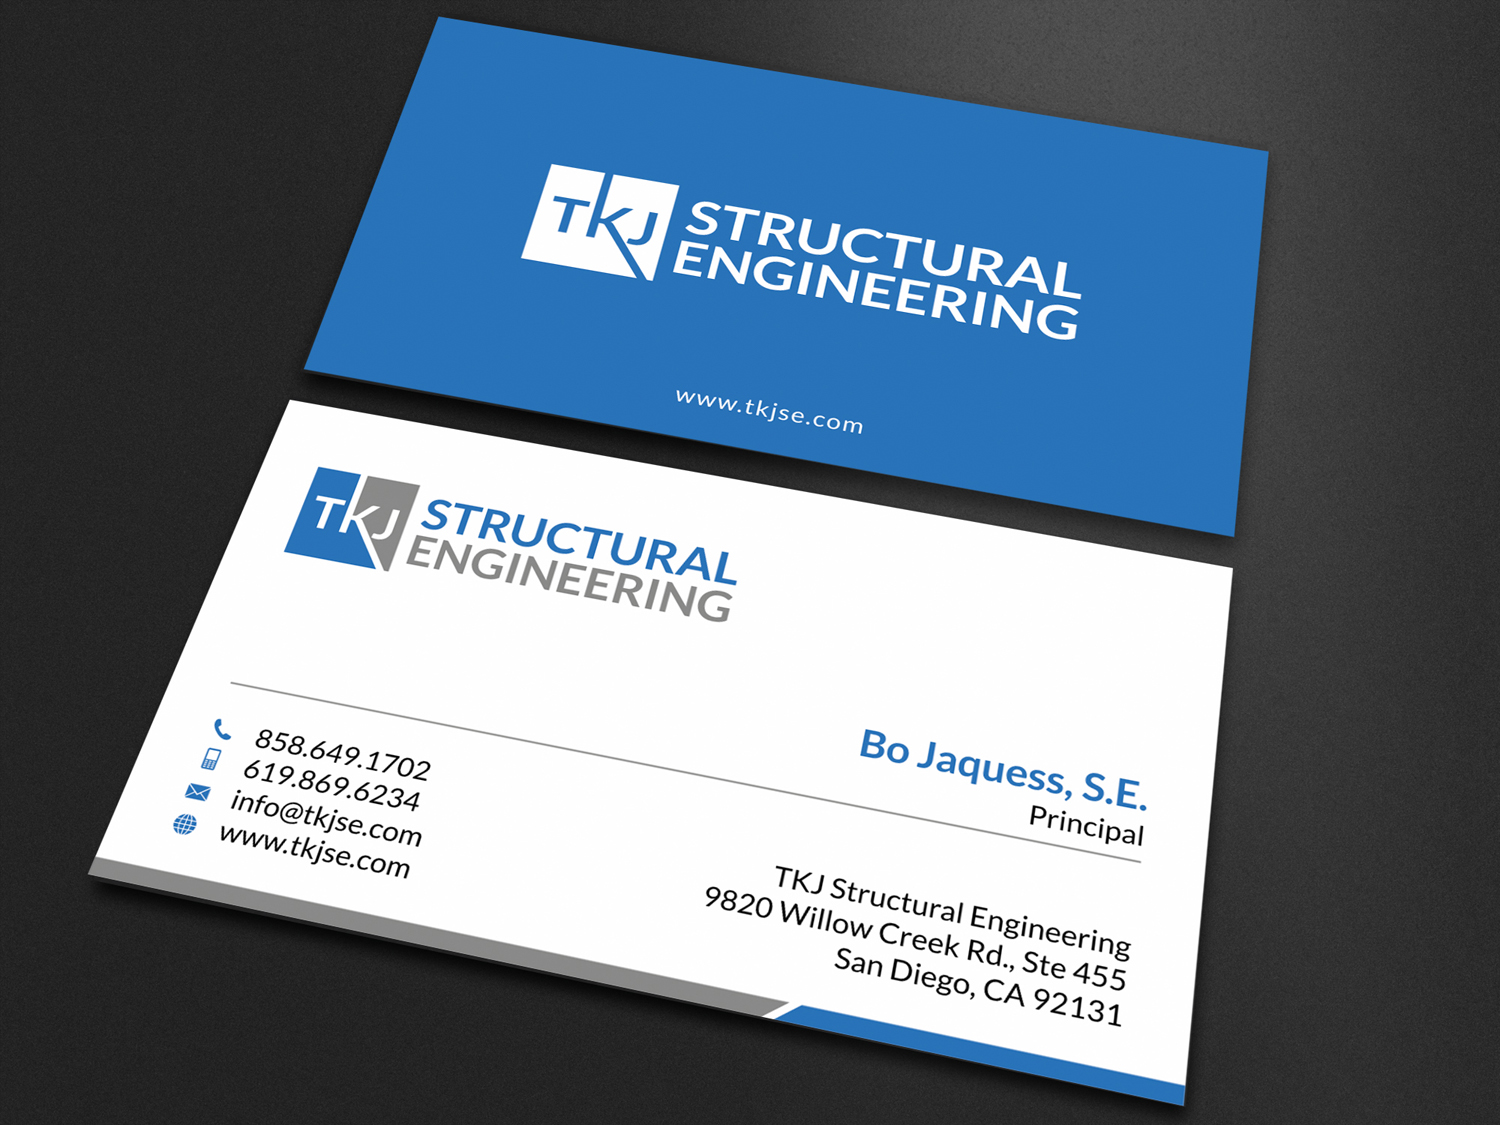 Business business card design for tkj structural engineering by business business card design for tkj structural engineering in united states design 16497240 reheart Images